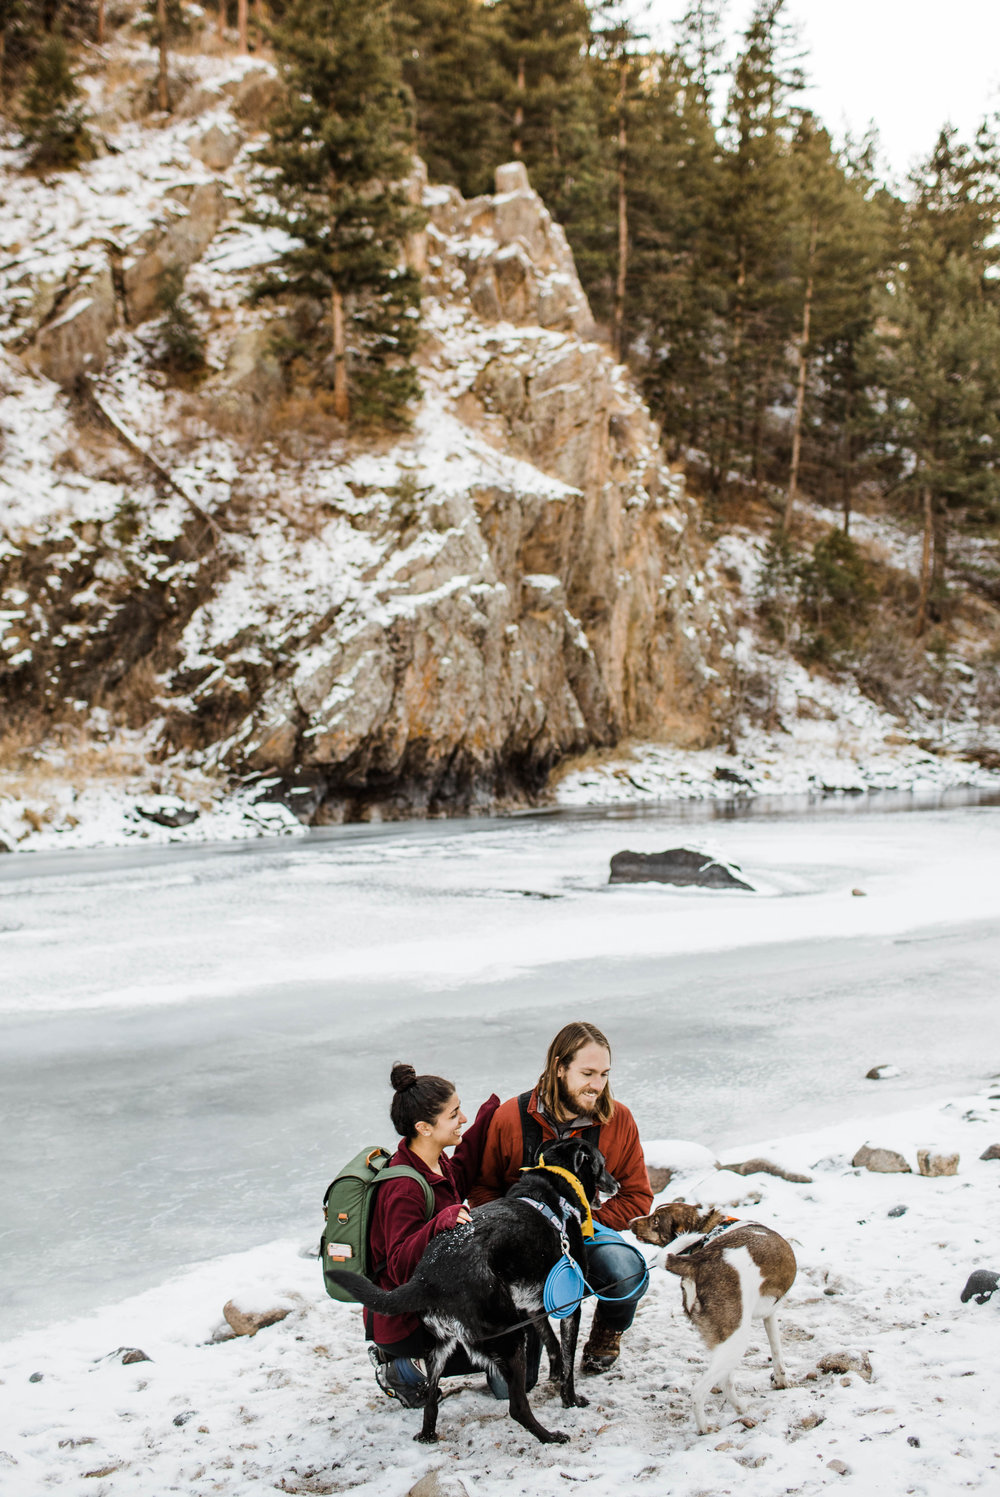 Sheena_Shahangian_Photography_Fort_Collins_Colorado_Rocky_Mountain_Adventure_Mountain_Session_Ed_Sheena-3.jpg